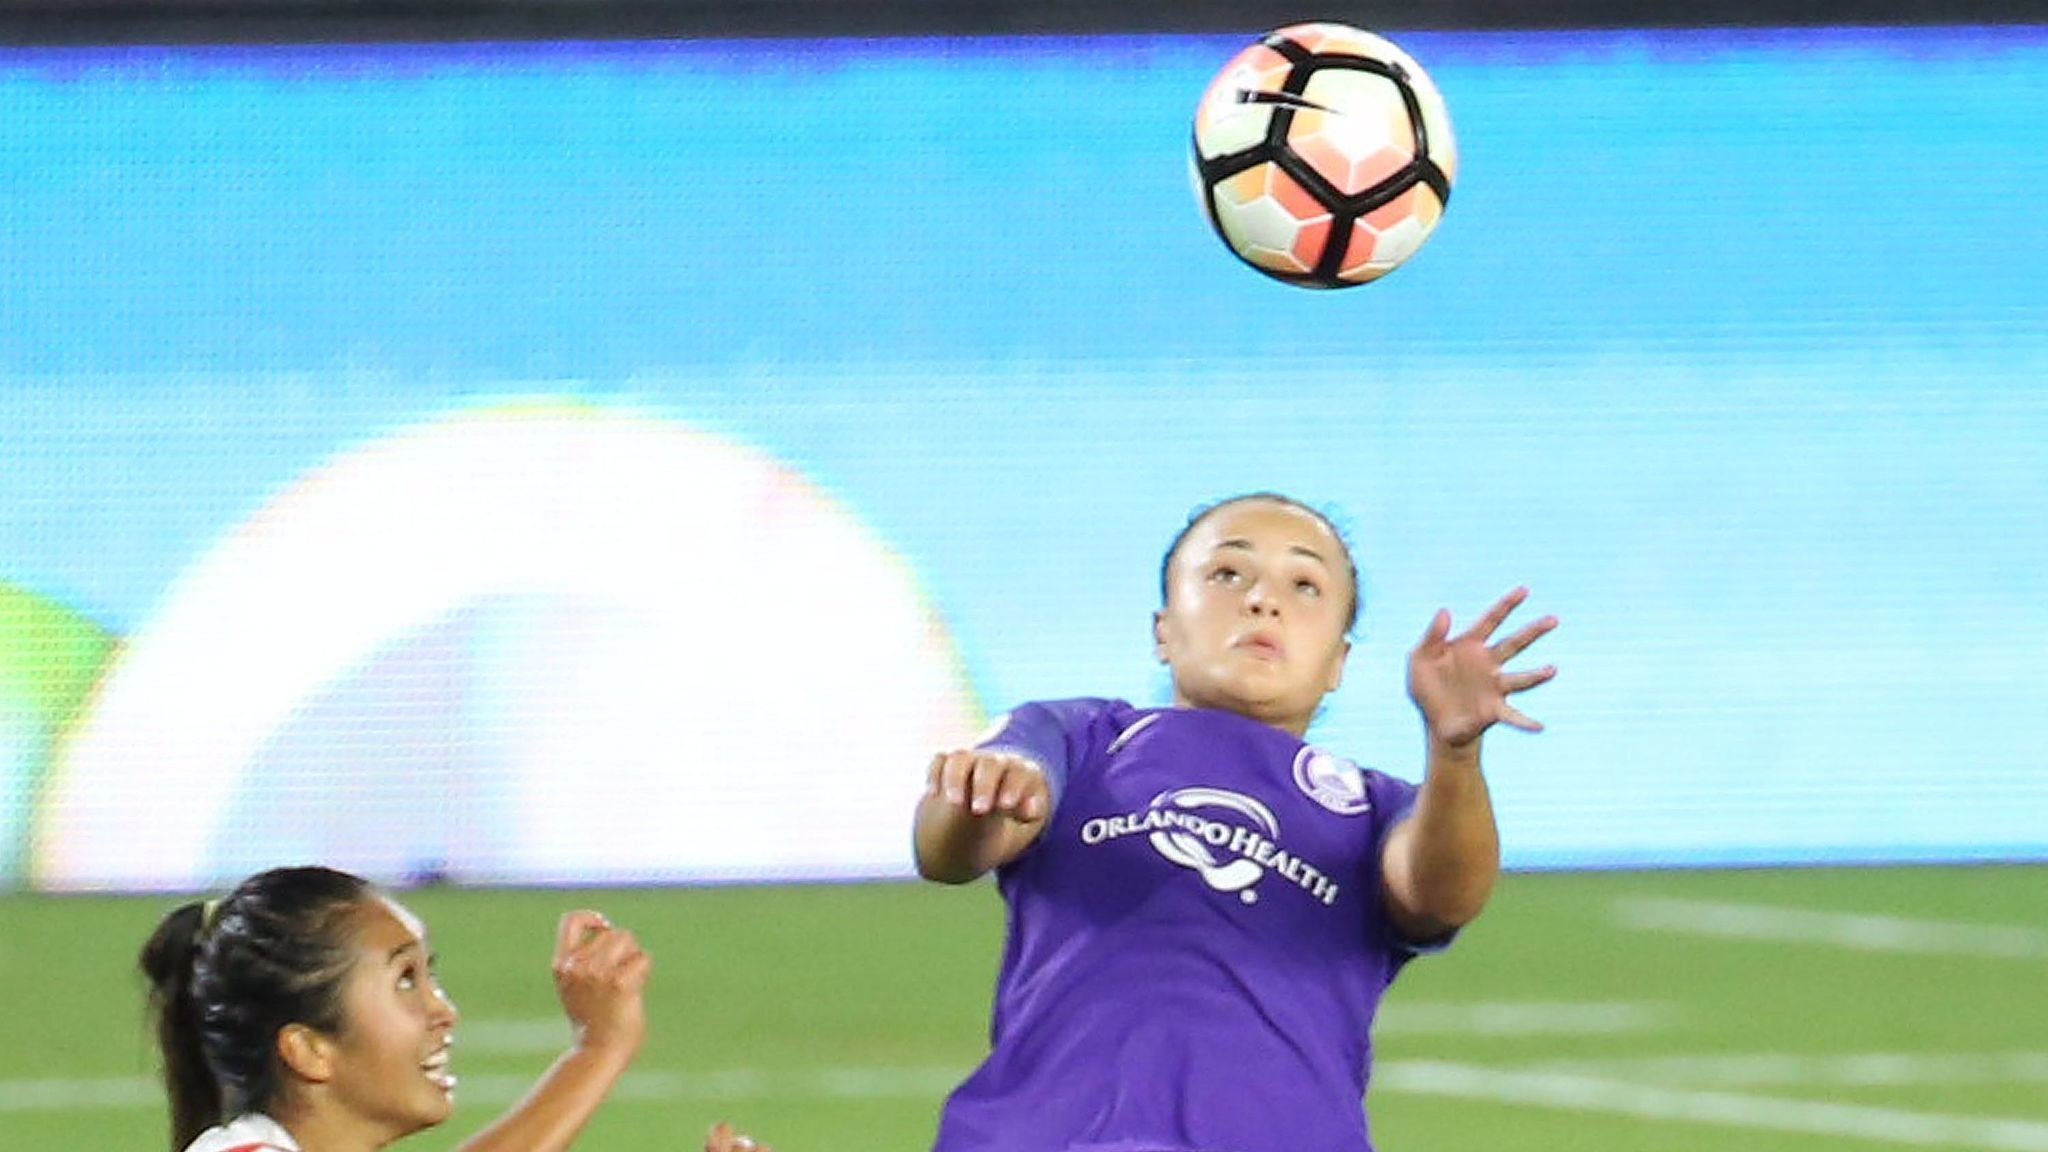 2048x1152 Orlando Pride defenders Kristen Edmonds, Camila hope to play Portland  Saturday - Orlando Sentinel